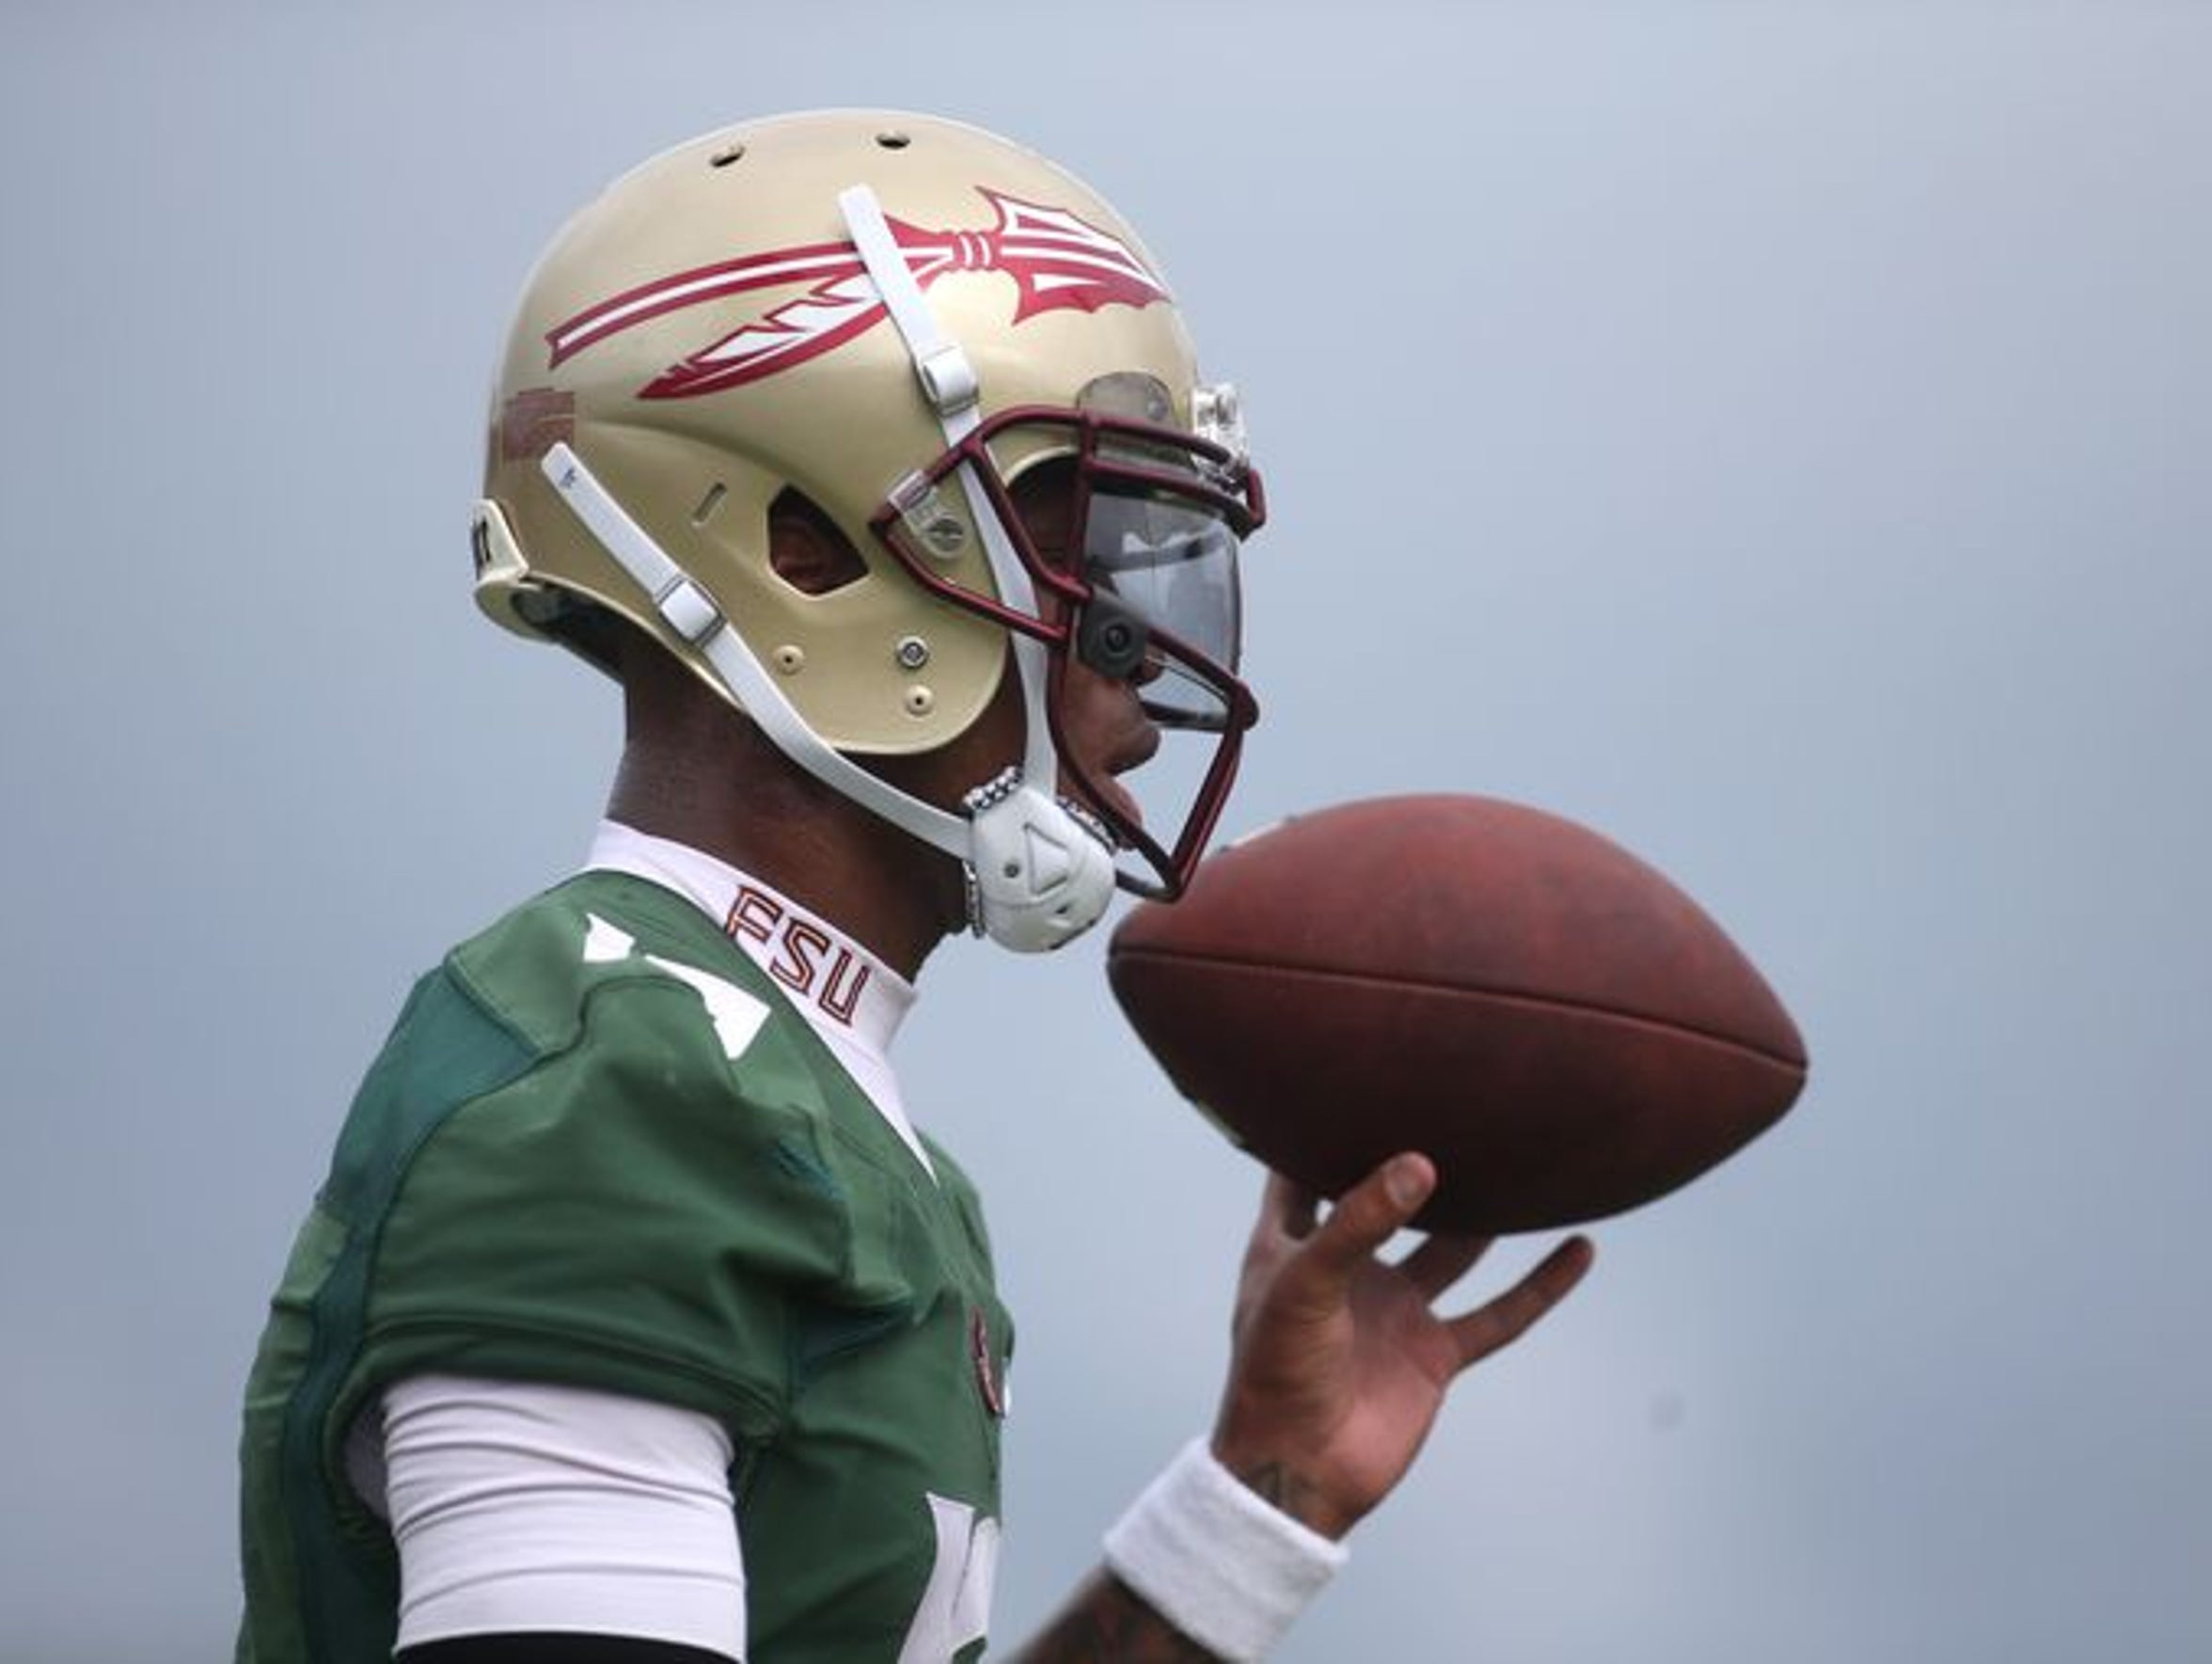 Francois will look to lead FSU to its first College